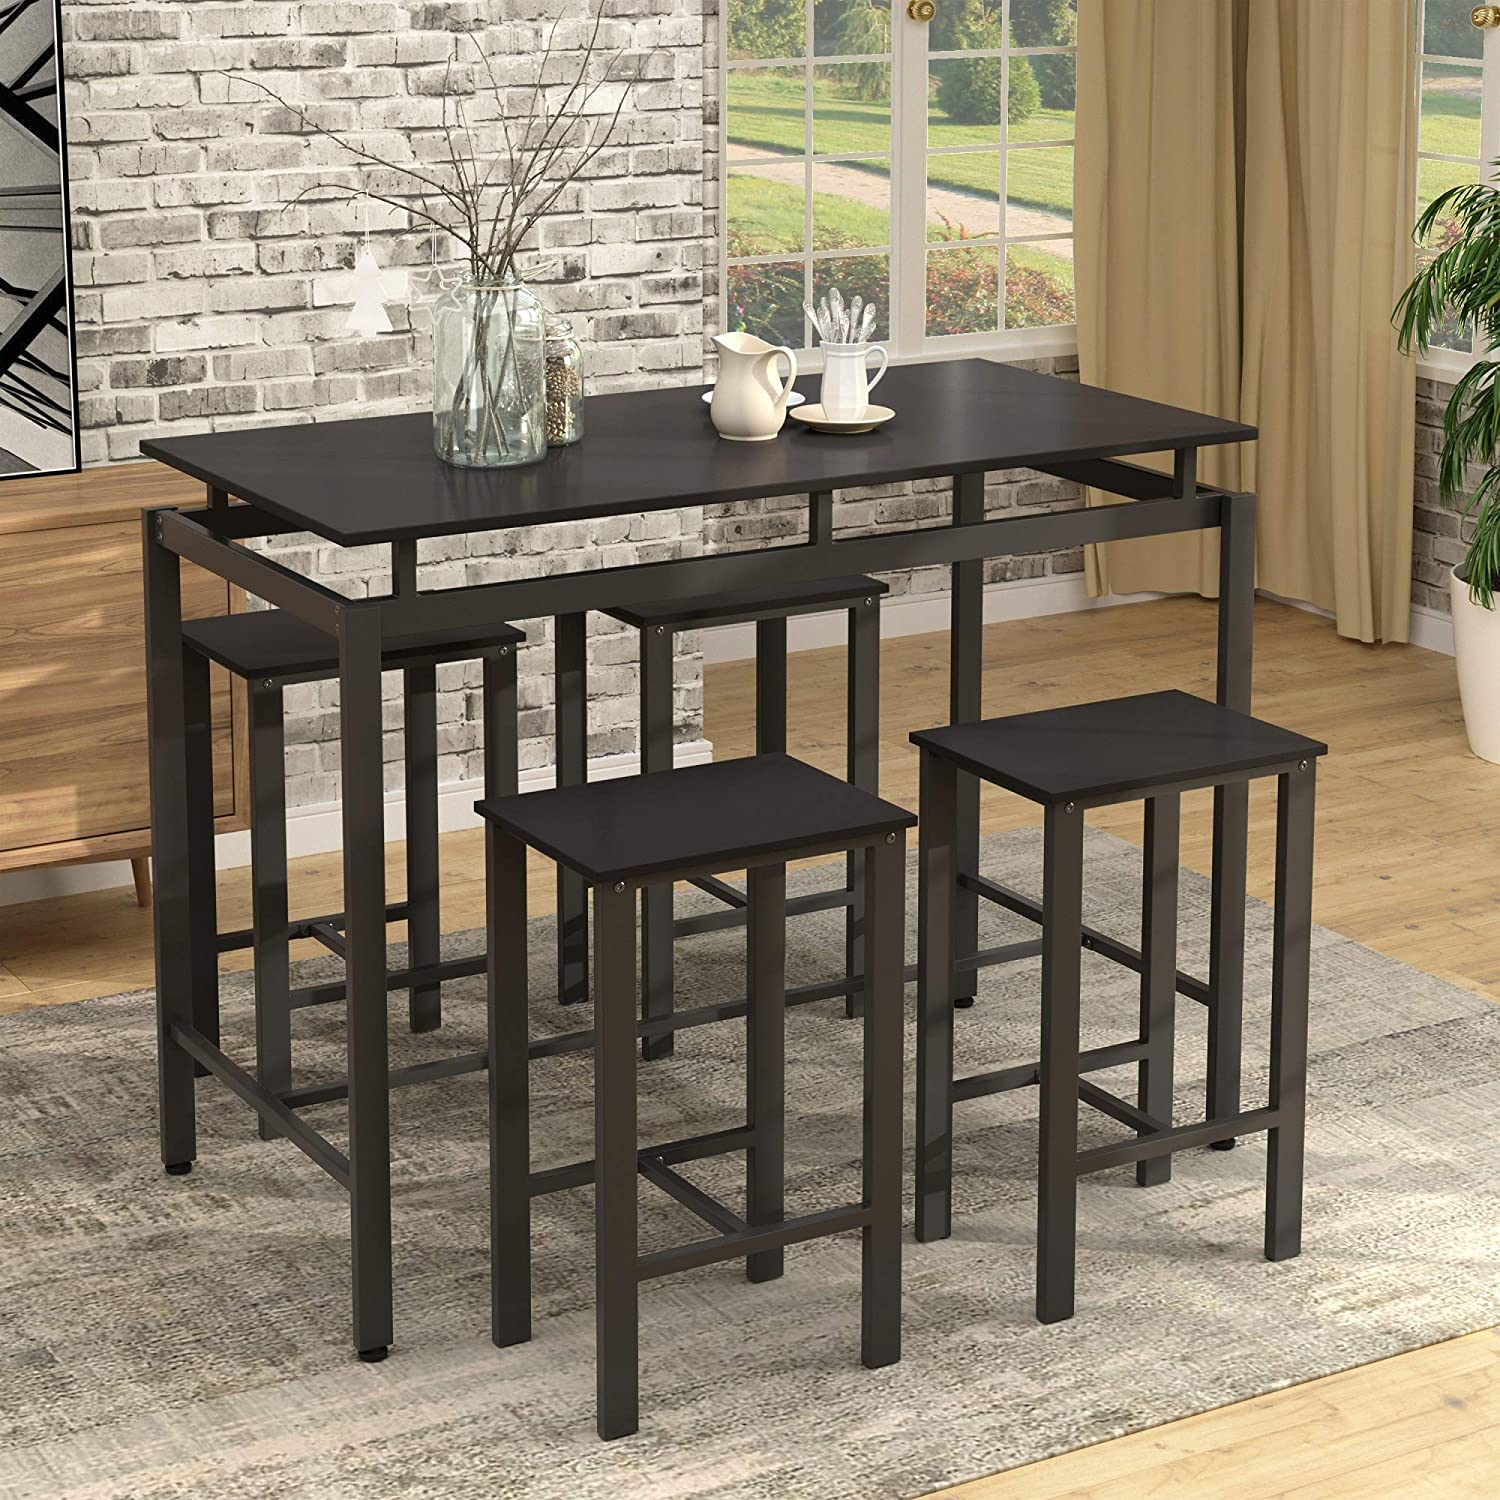 Danxee 5-Piece Kitchen Counter Height Pub Dining Table Set, High Breakfast Table with 4 Chairs for Dining Area (Espresso)